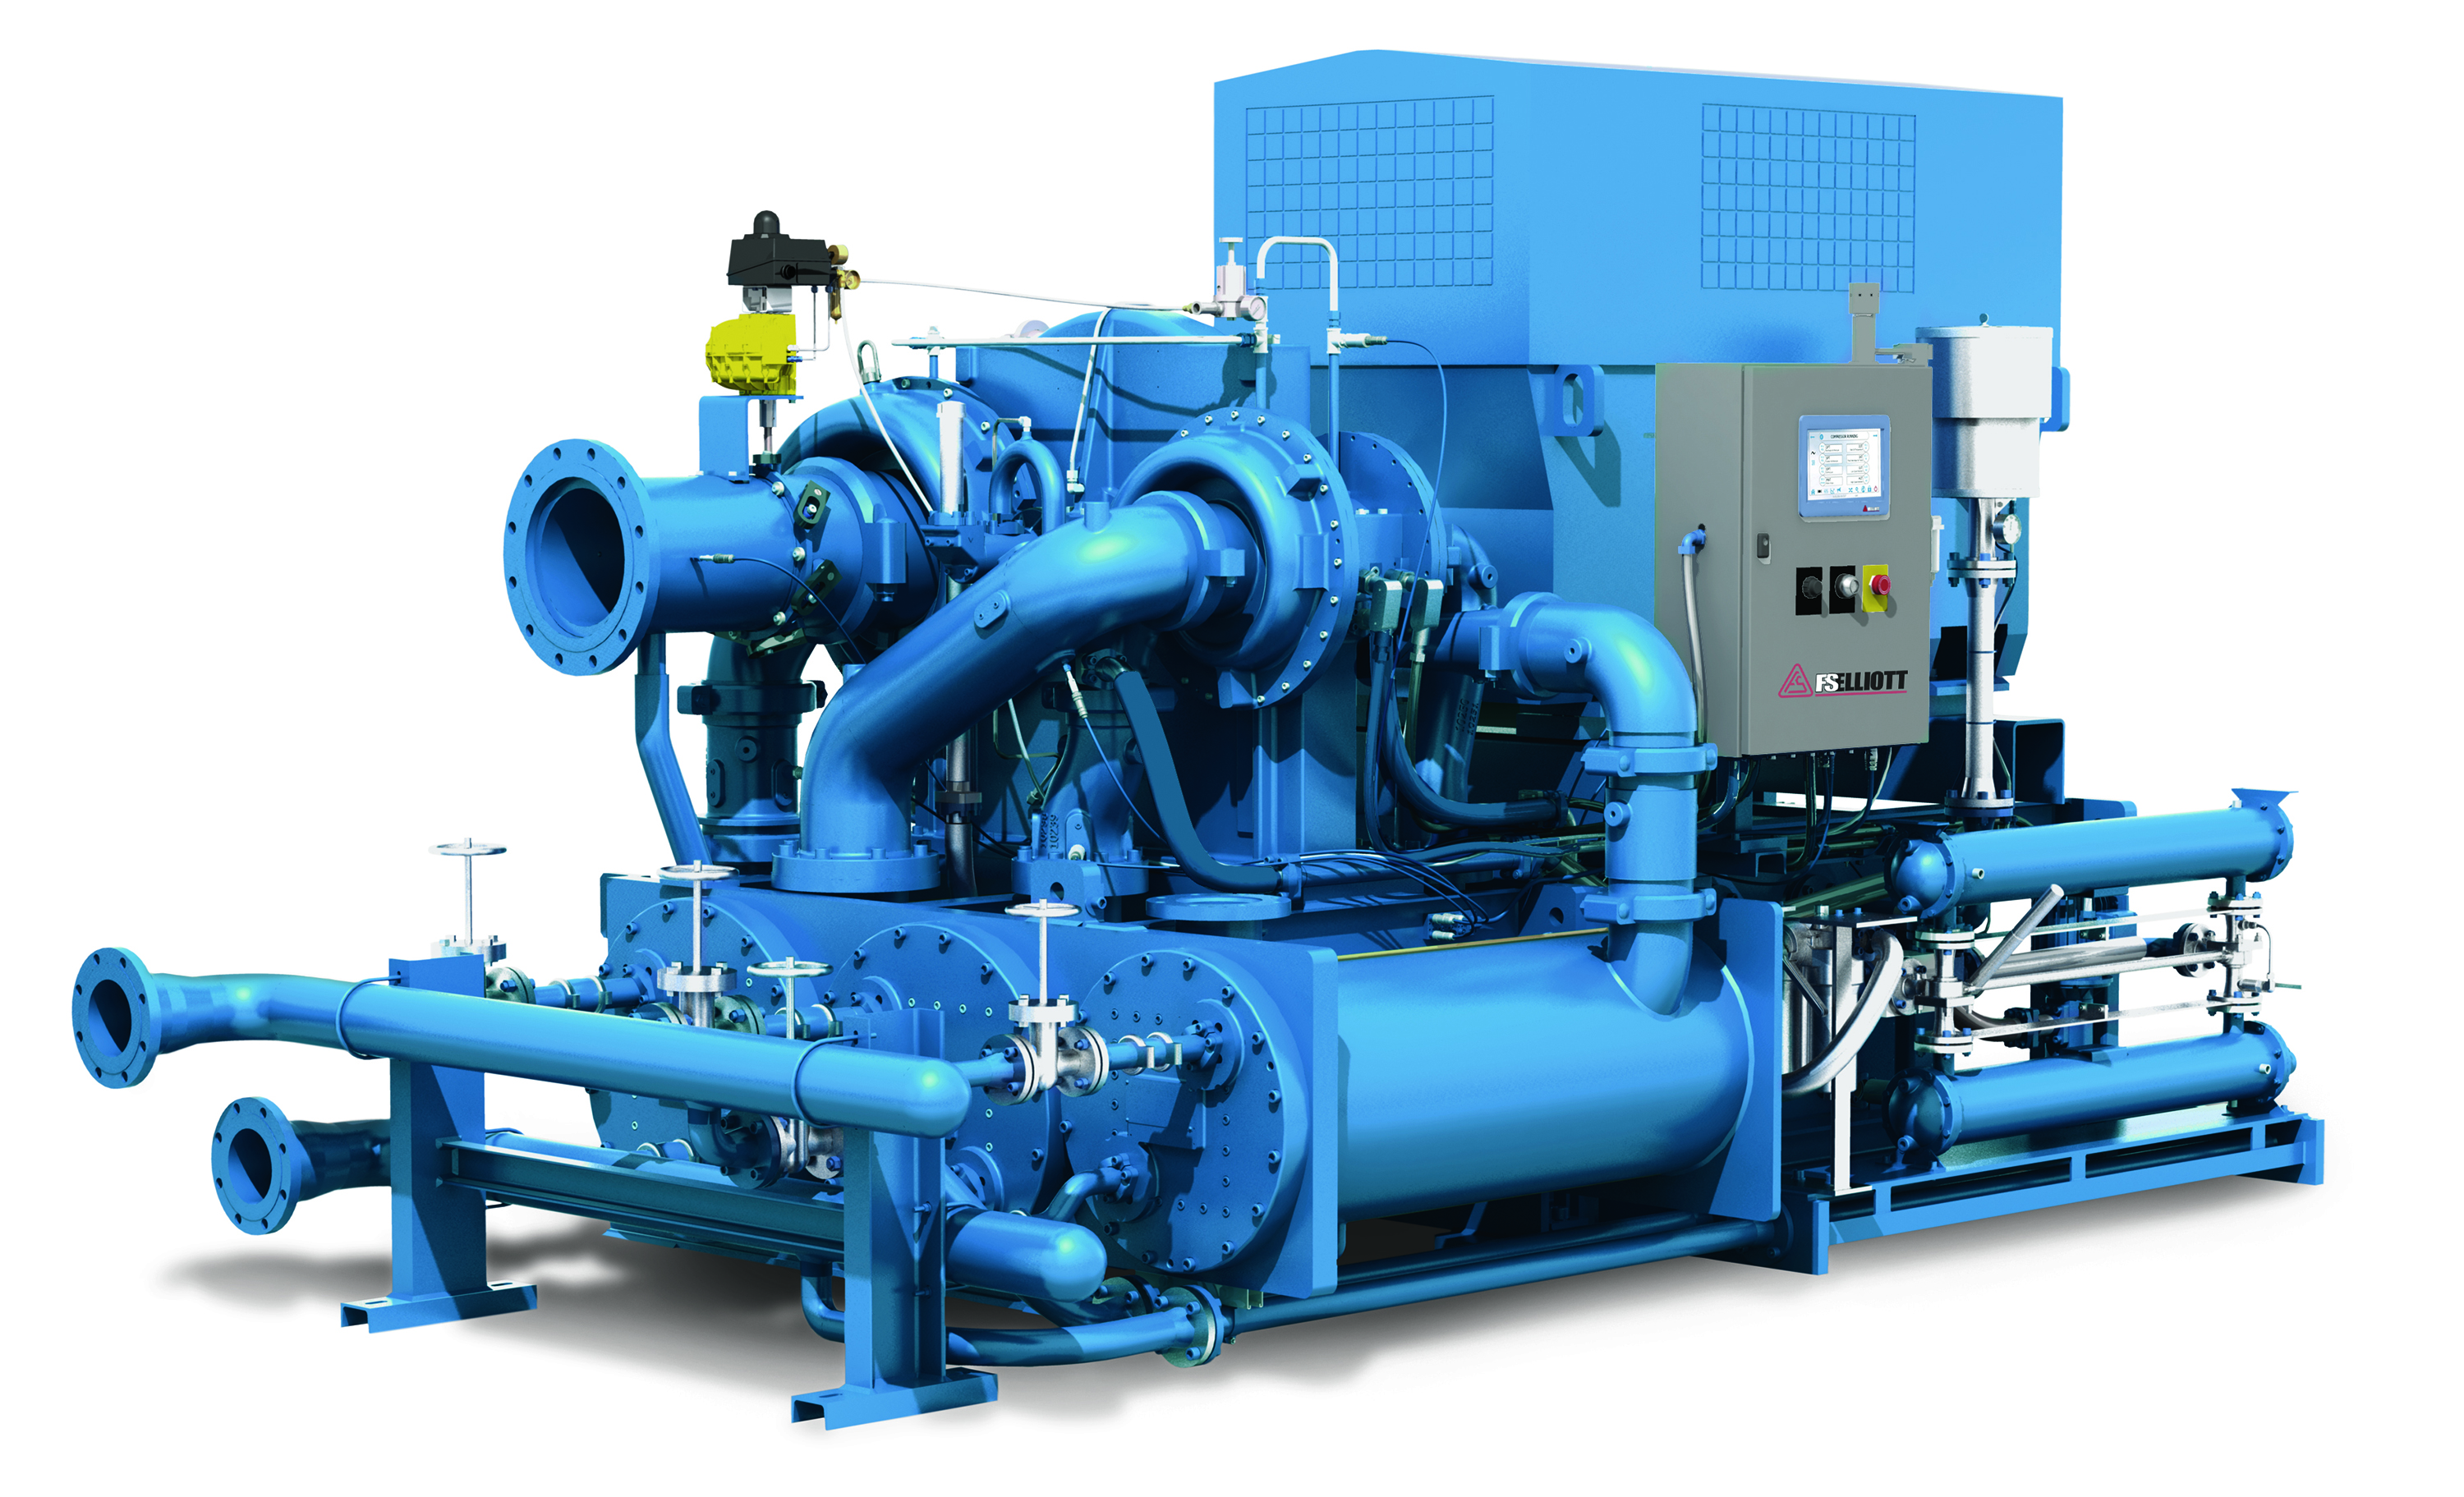 Benefits of Using Centrifugal Compressors